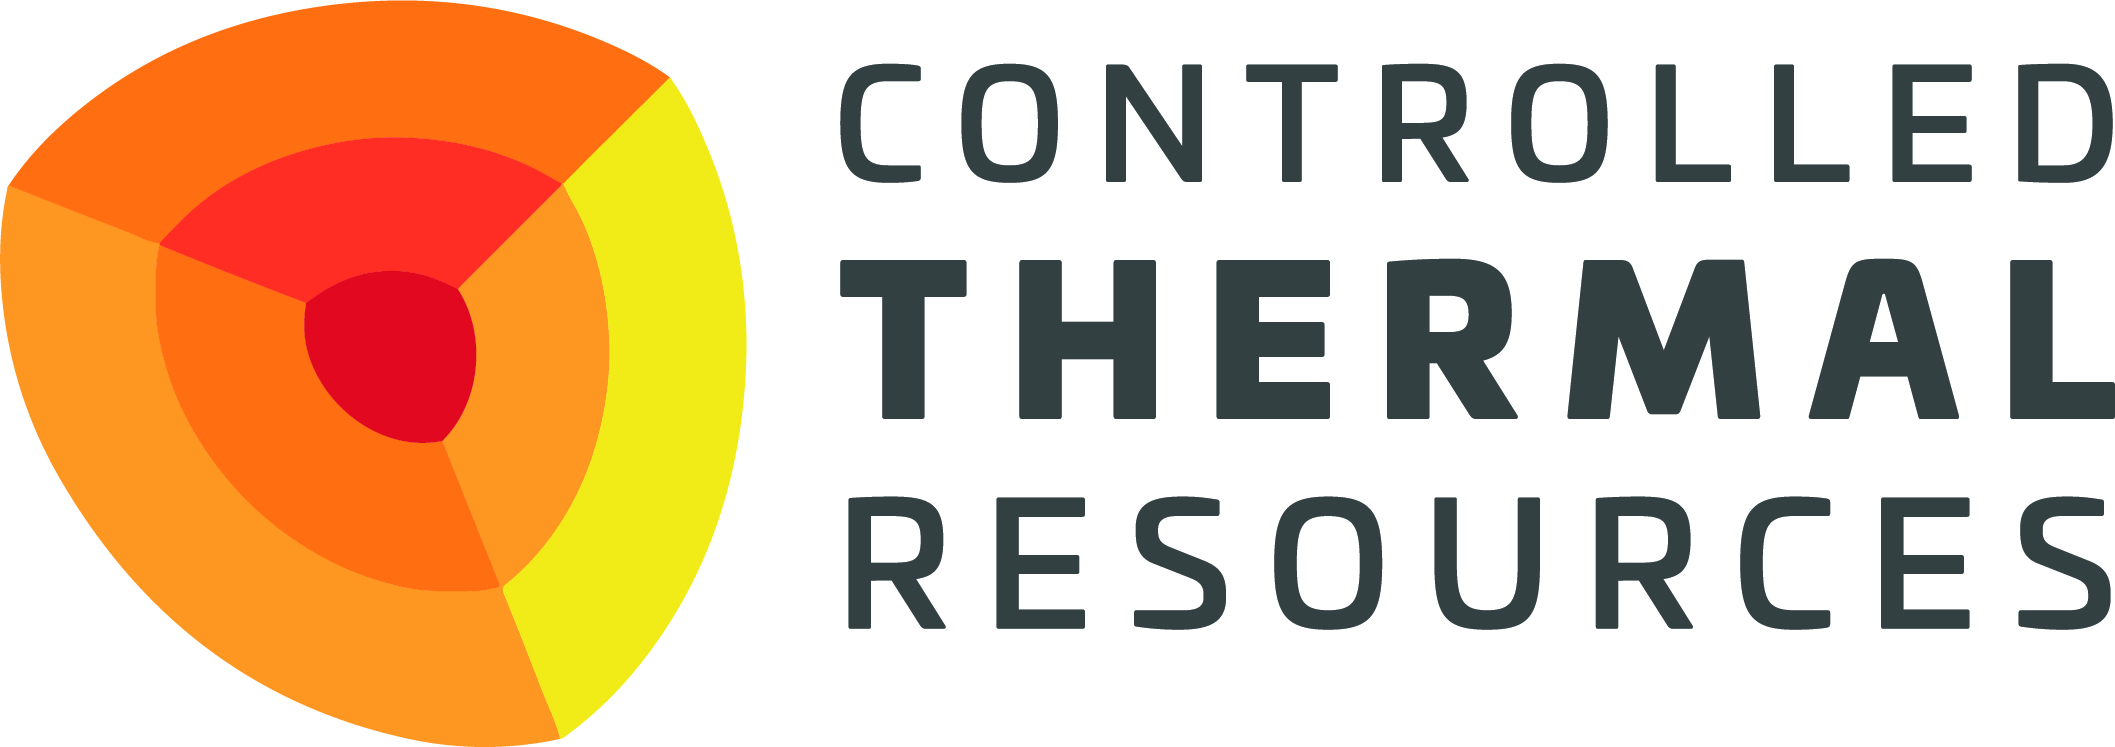 Conrolled Thermal Resources Logo